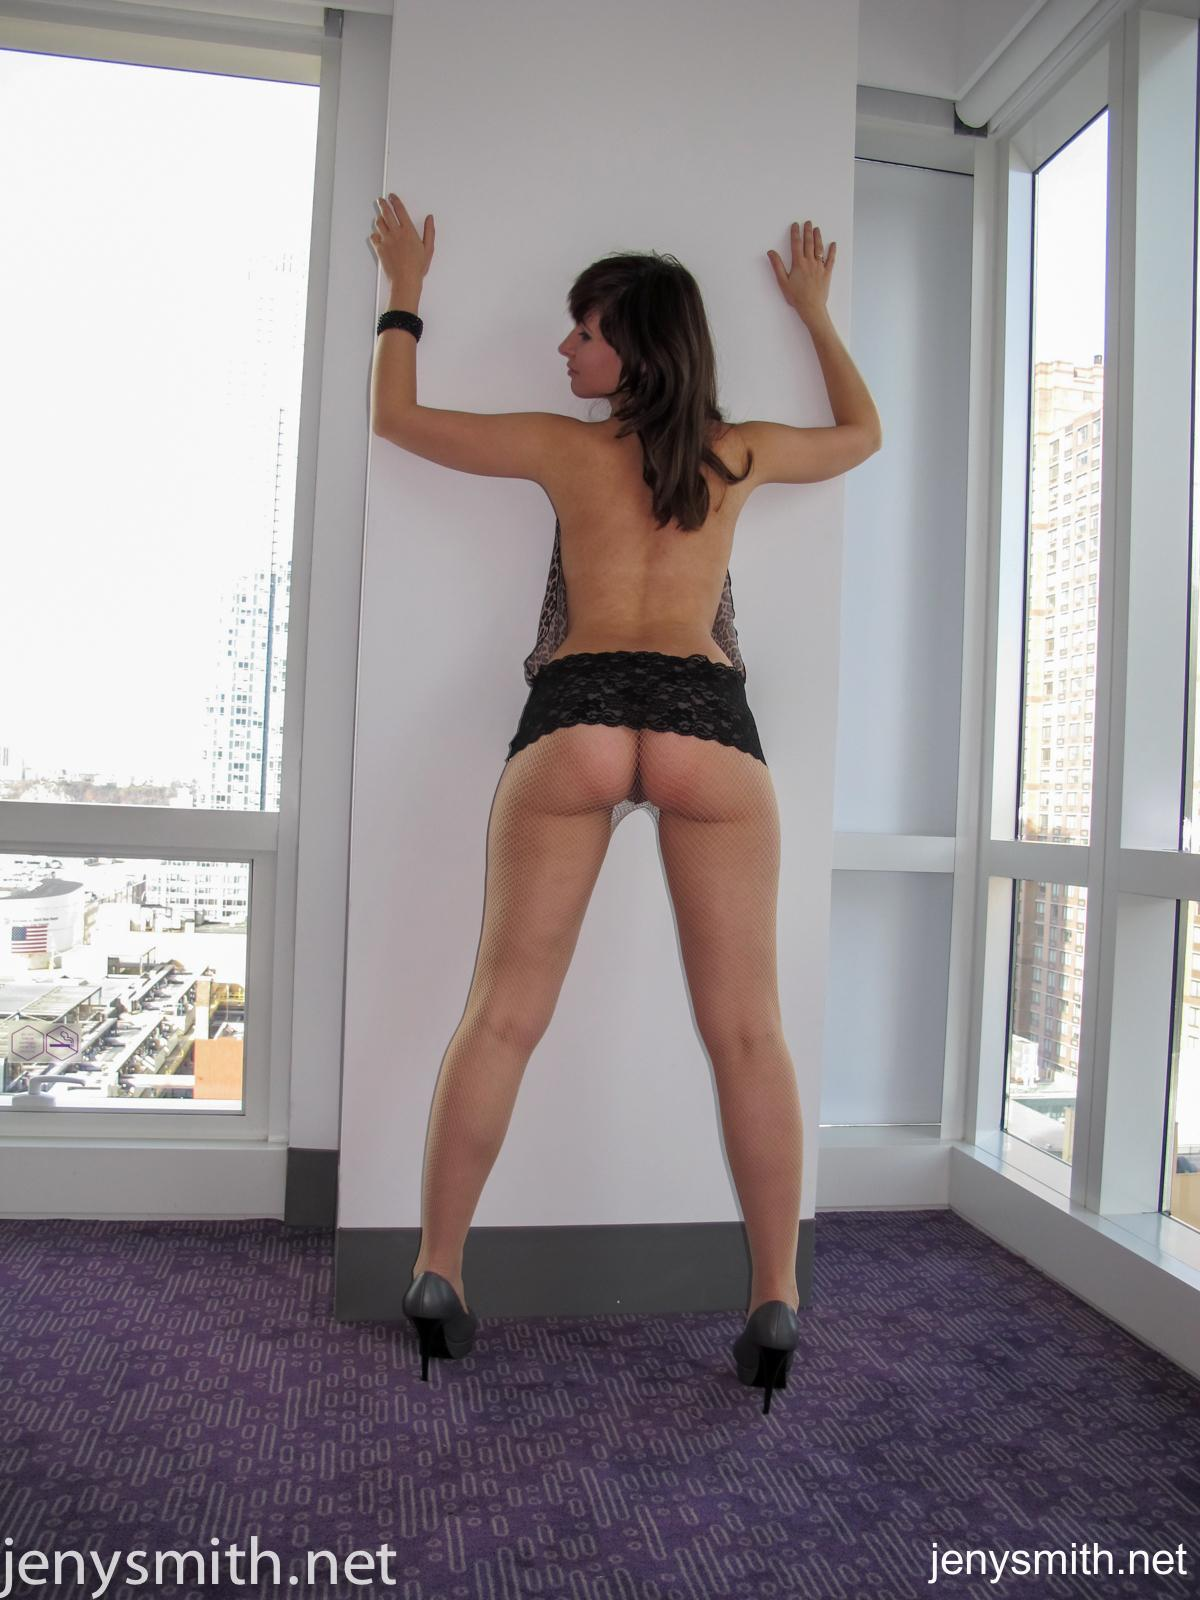 Pantyhose chat room inquiry answer